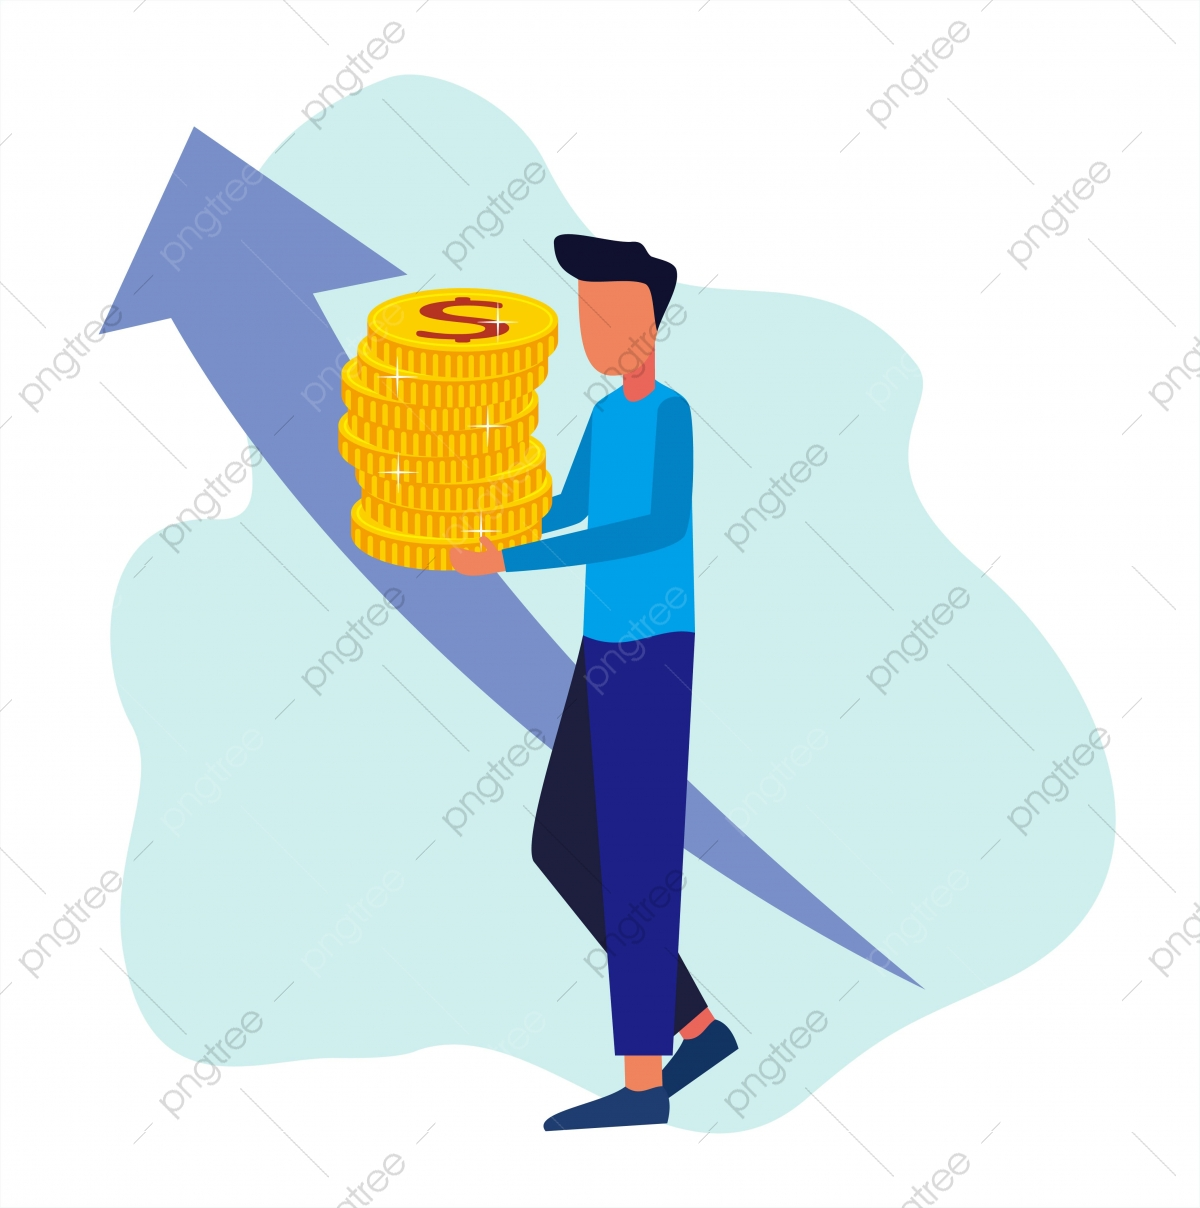 Successful Businessman Creative Illustration Of Business Vector Graphics Financial Services Cash Back Concepts Investments Currency Exchange Savings Accounts Fund Business Growth Png And Vector With Transparent Background For Free Download